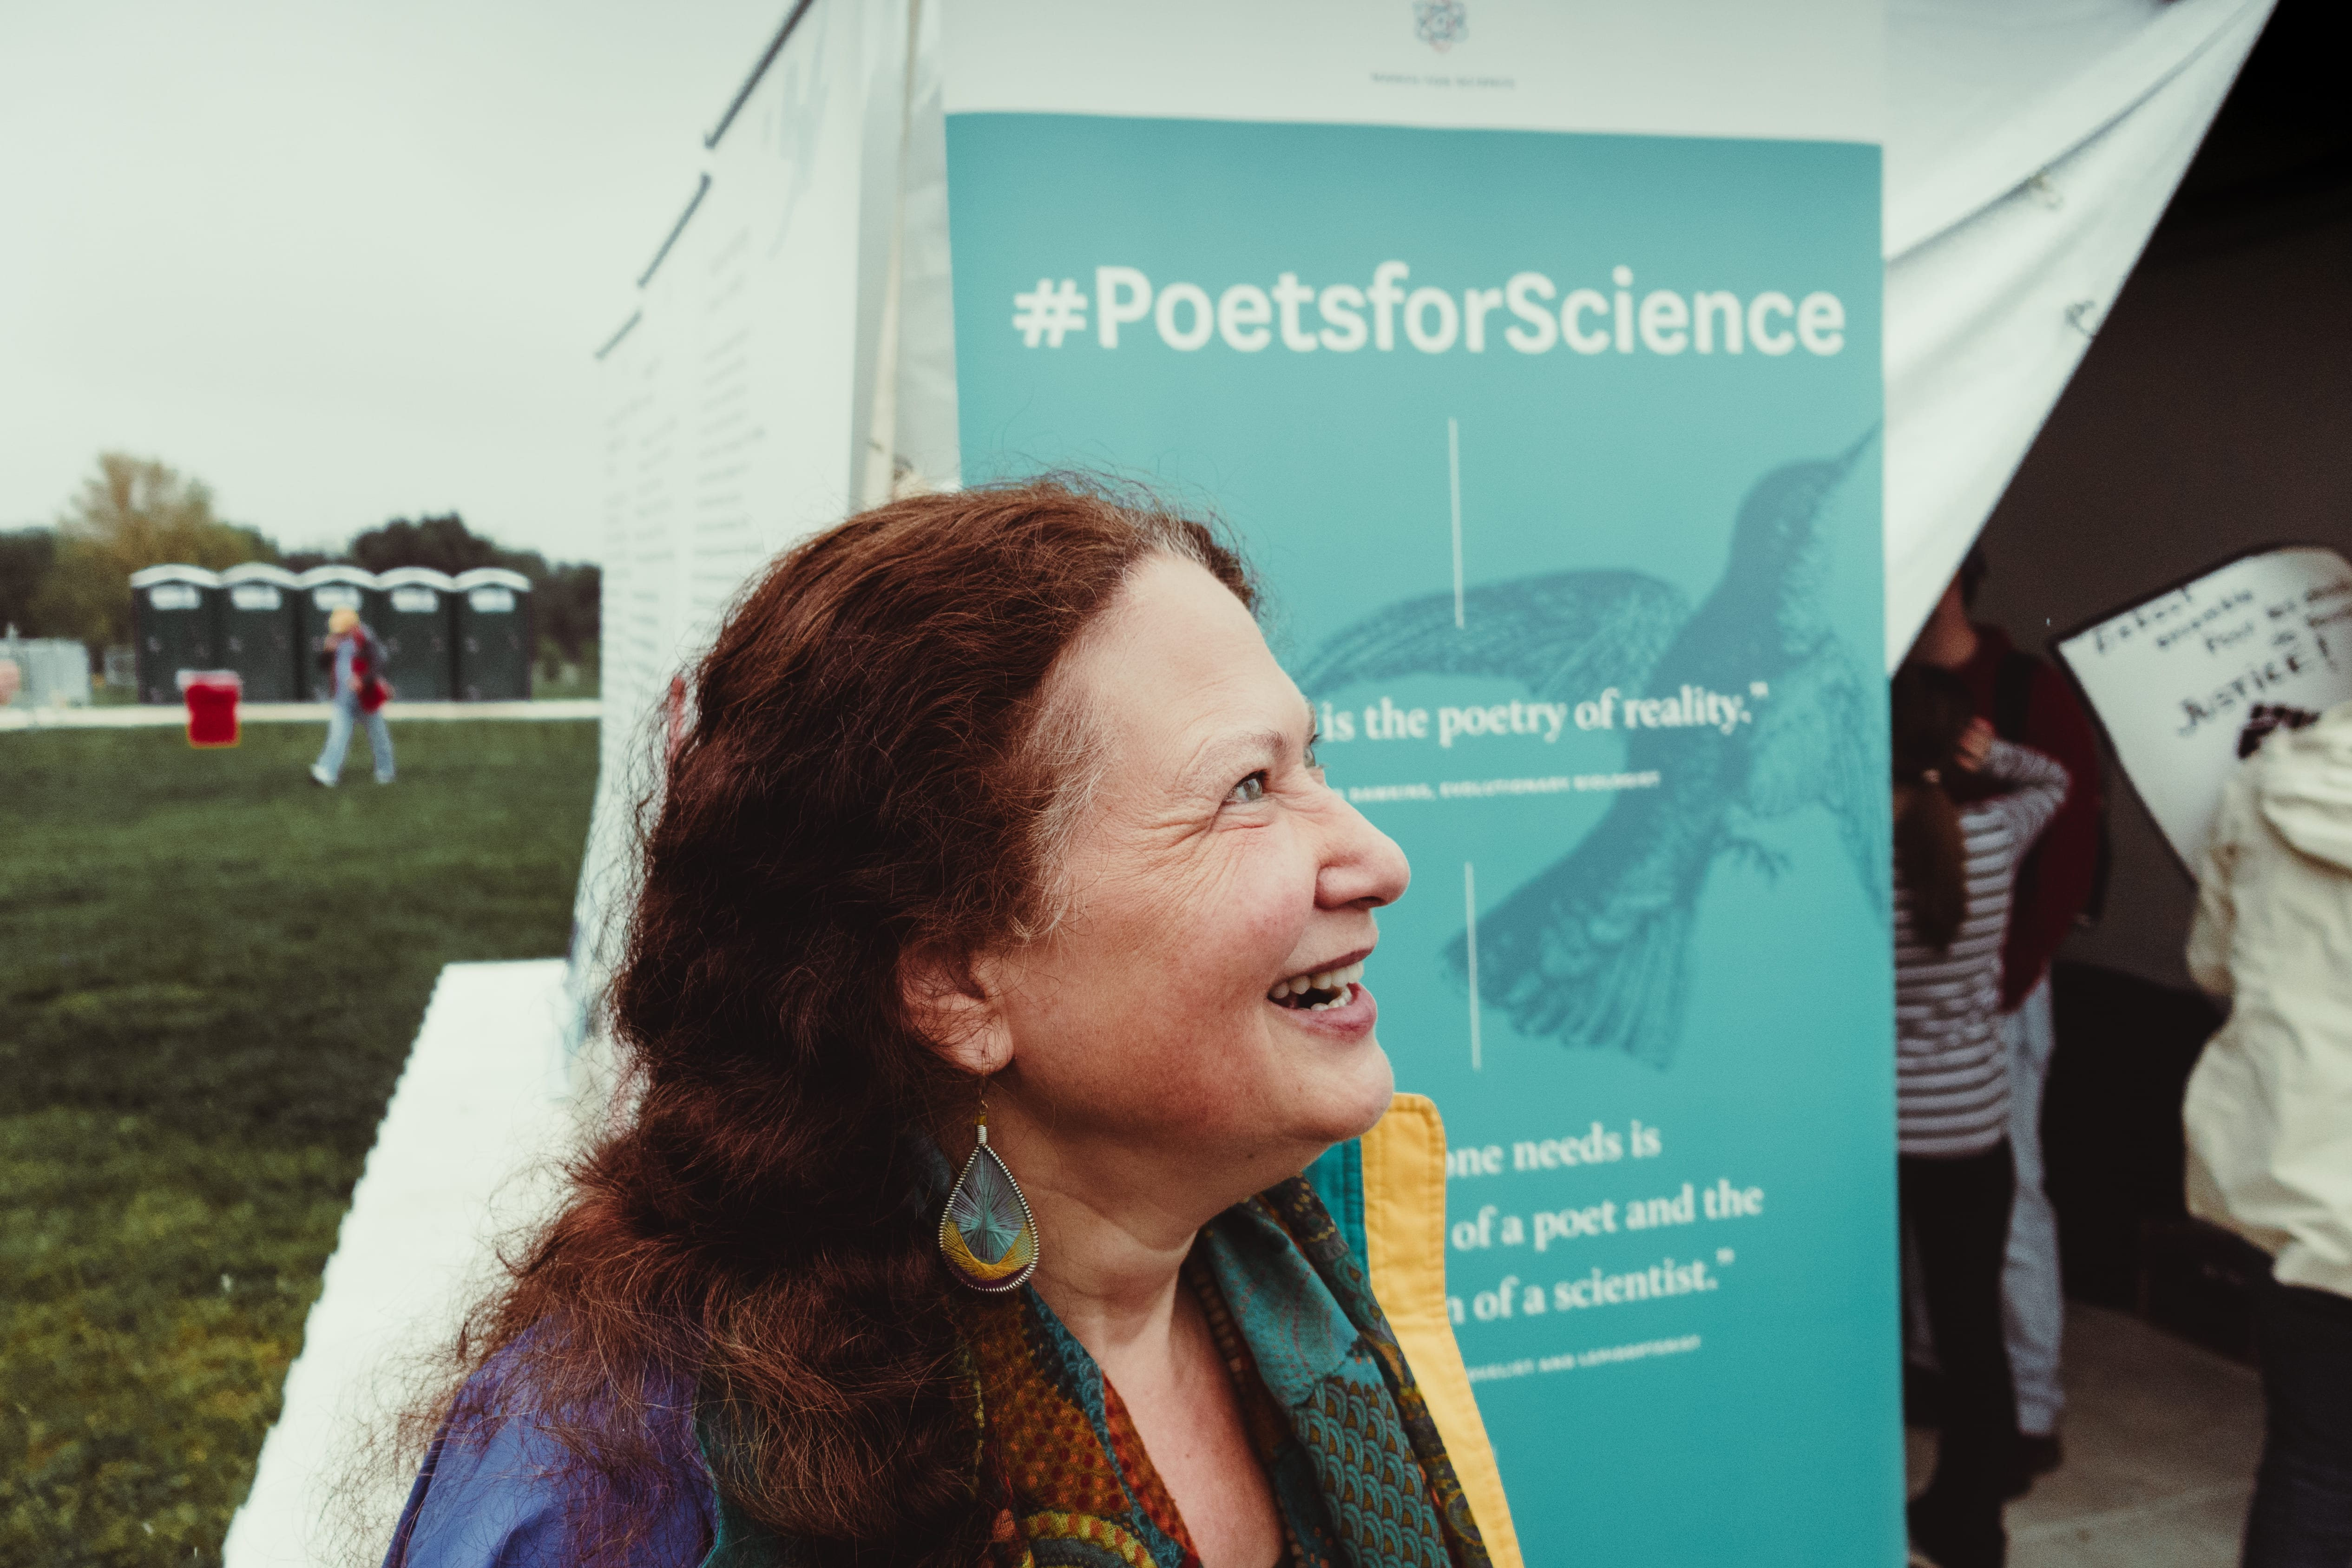 Poets for Science at the National Mall